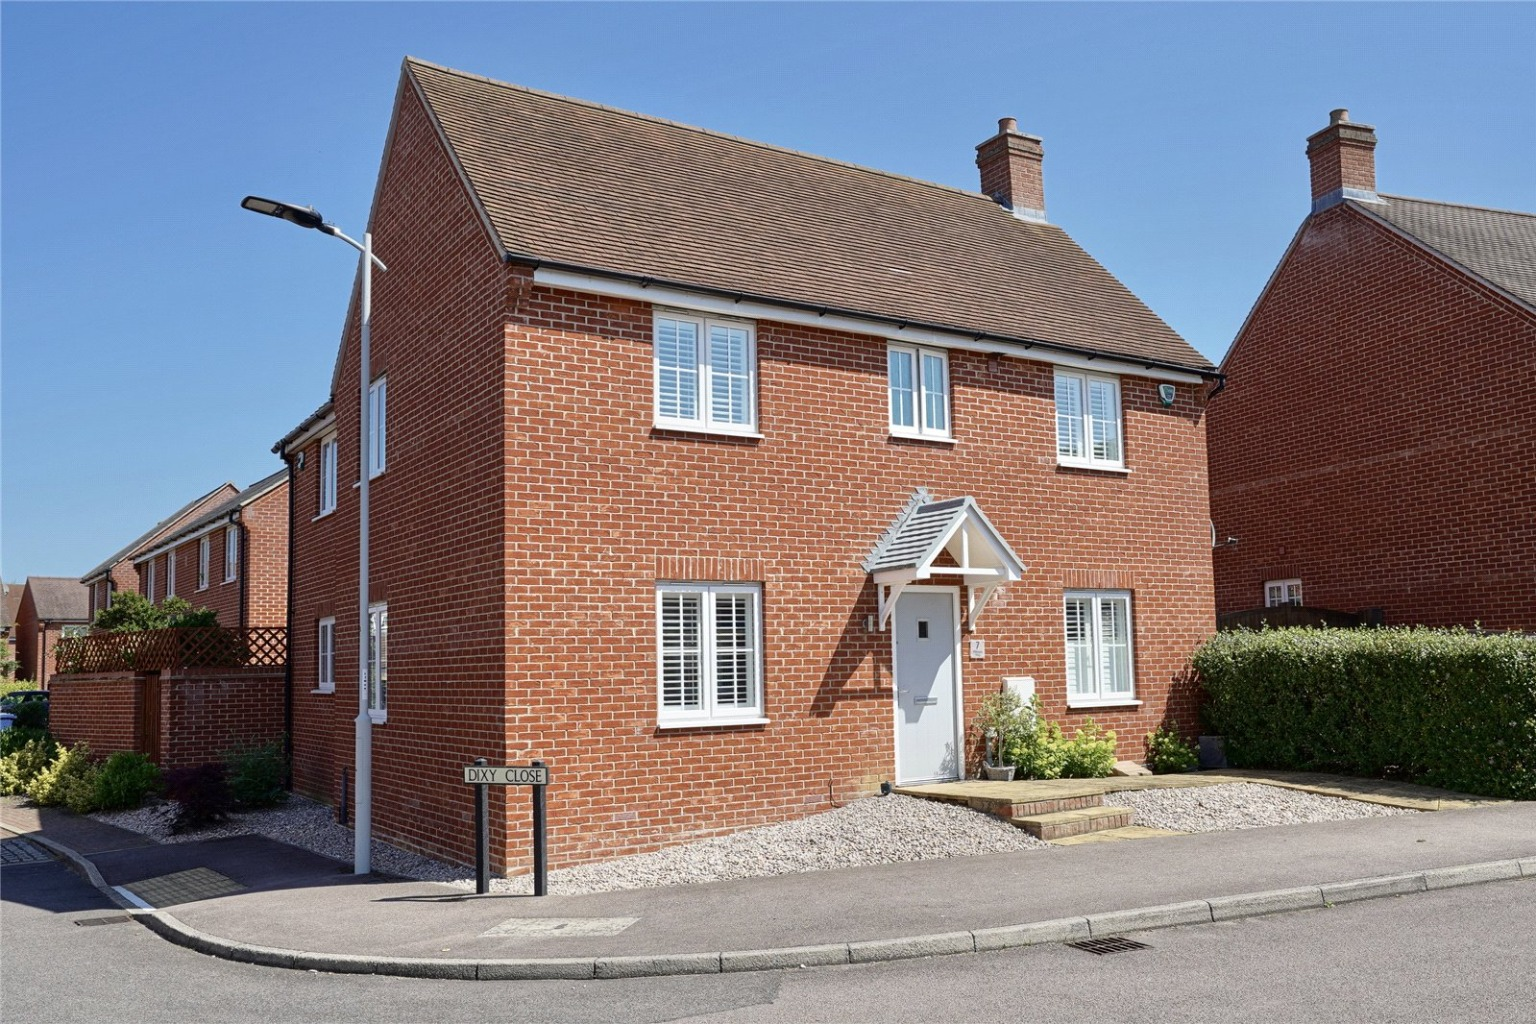 4 bed  for sale in Whiston Way, St. Neots, PE19